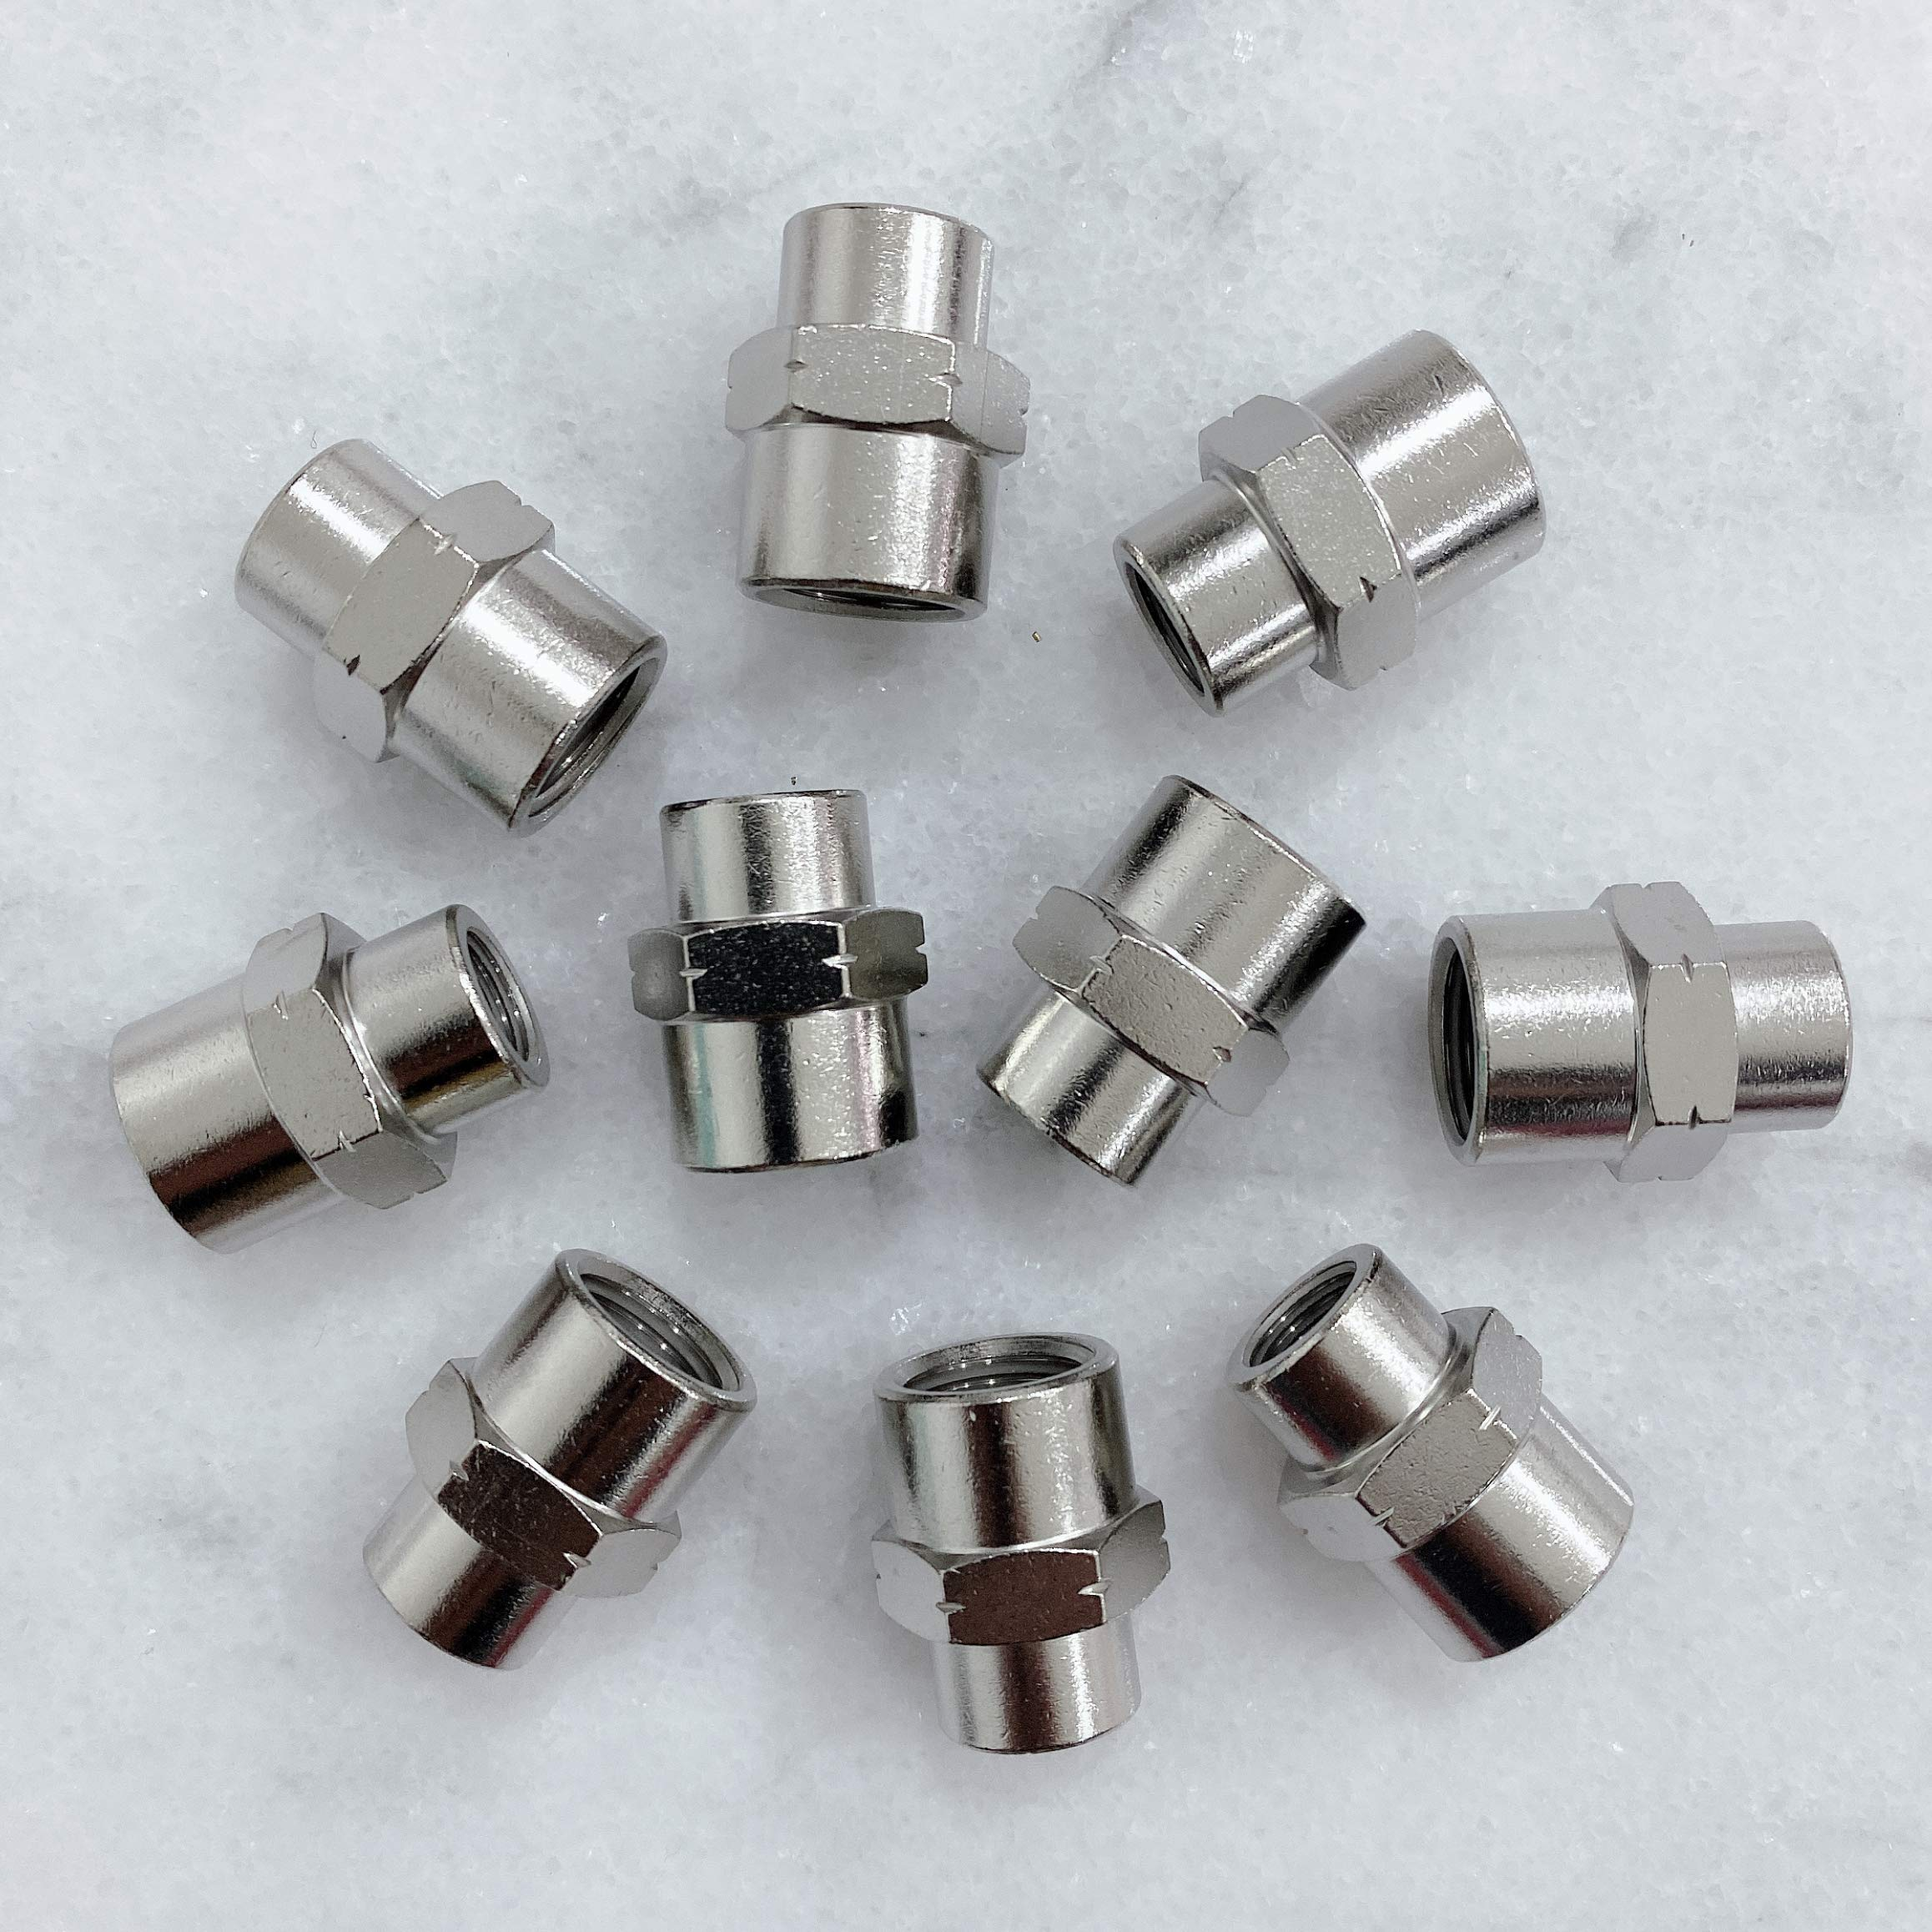 Pack of 10 MacCan Pneumatic JNT-N2 Female Tee 1//4 x 1//4 x 1//4 NPT Female Pipe Nickel Plated Brass Pipe Fitting